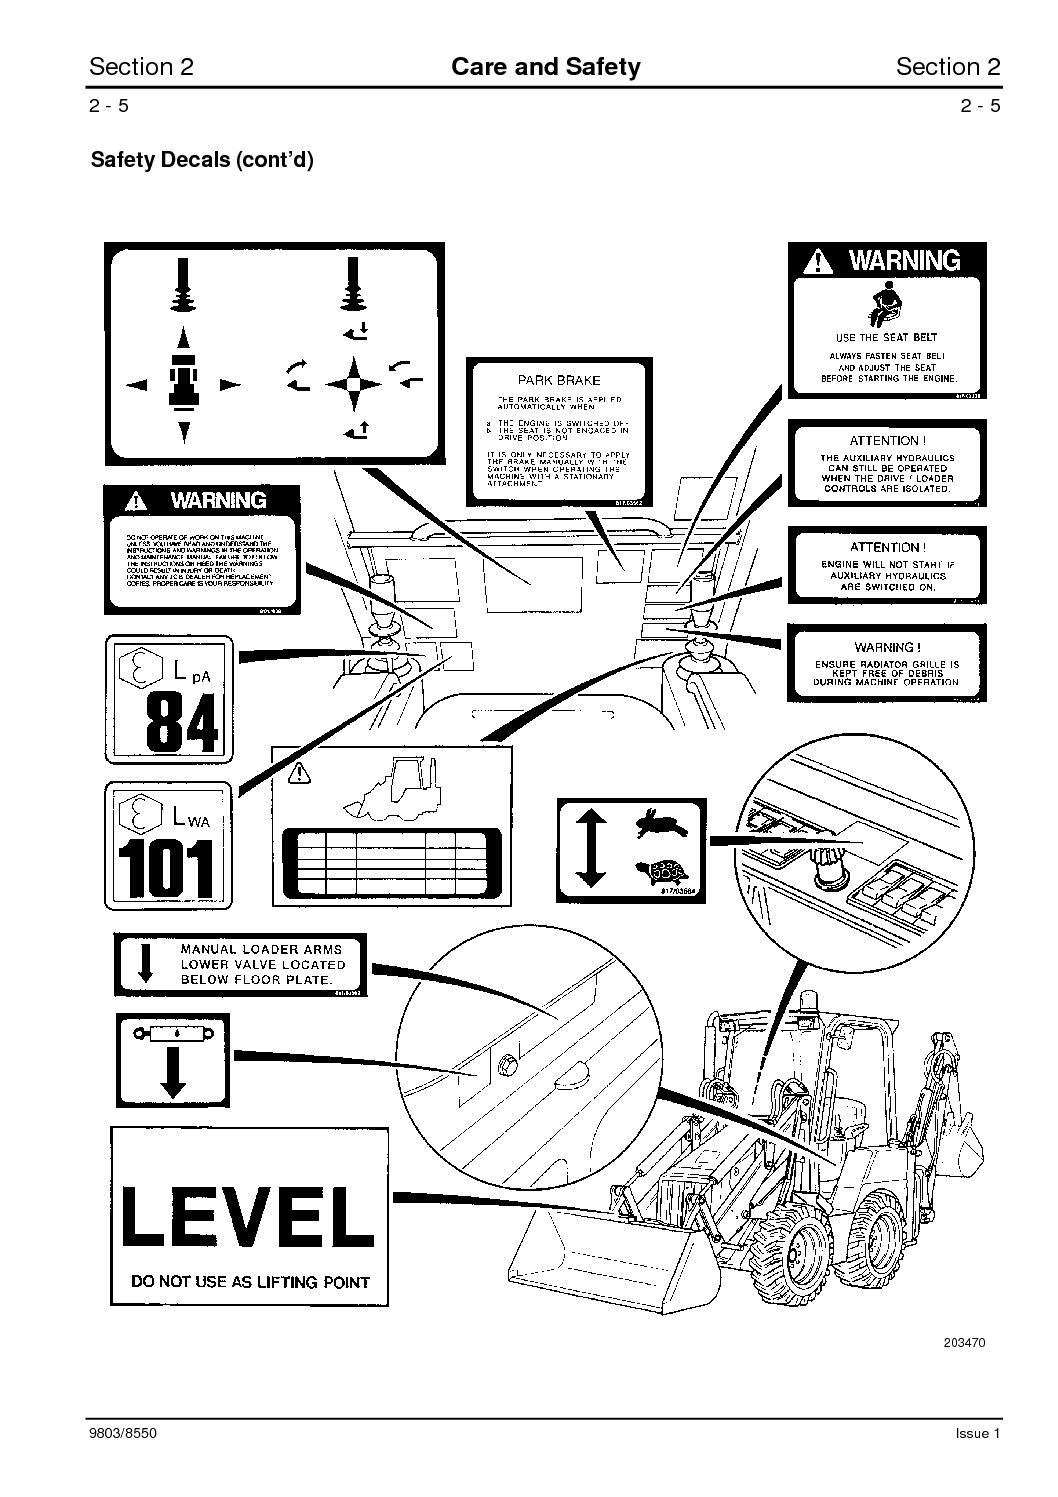 Jcb 1cx Backhoe Loader Service Repair Manual Sn751600 To 752999 Ducati Engine Diagrams Page 23